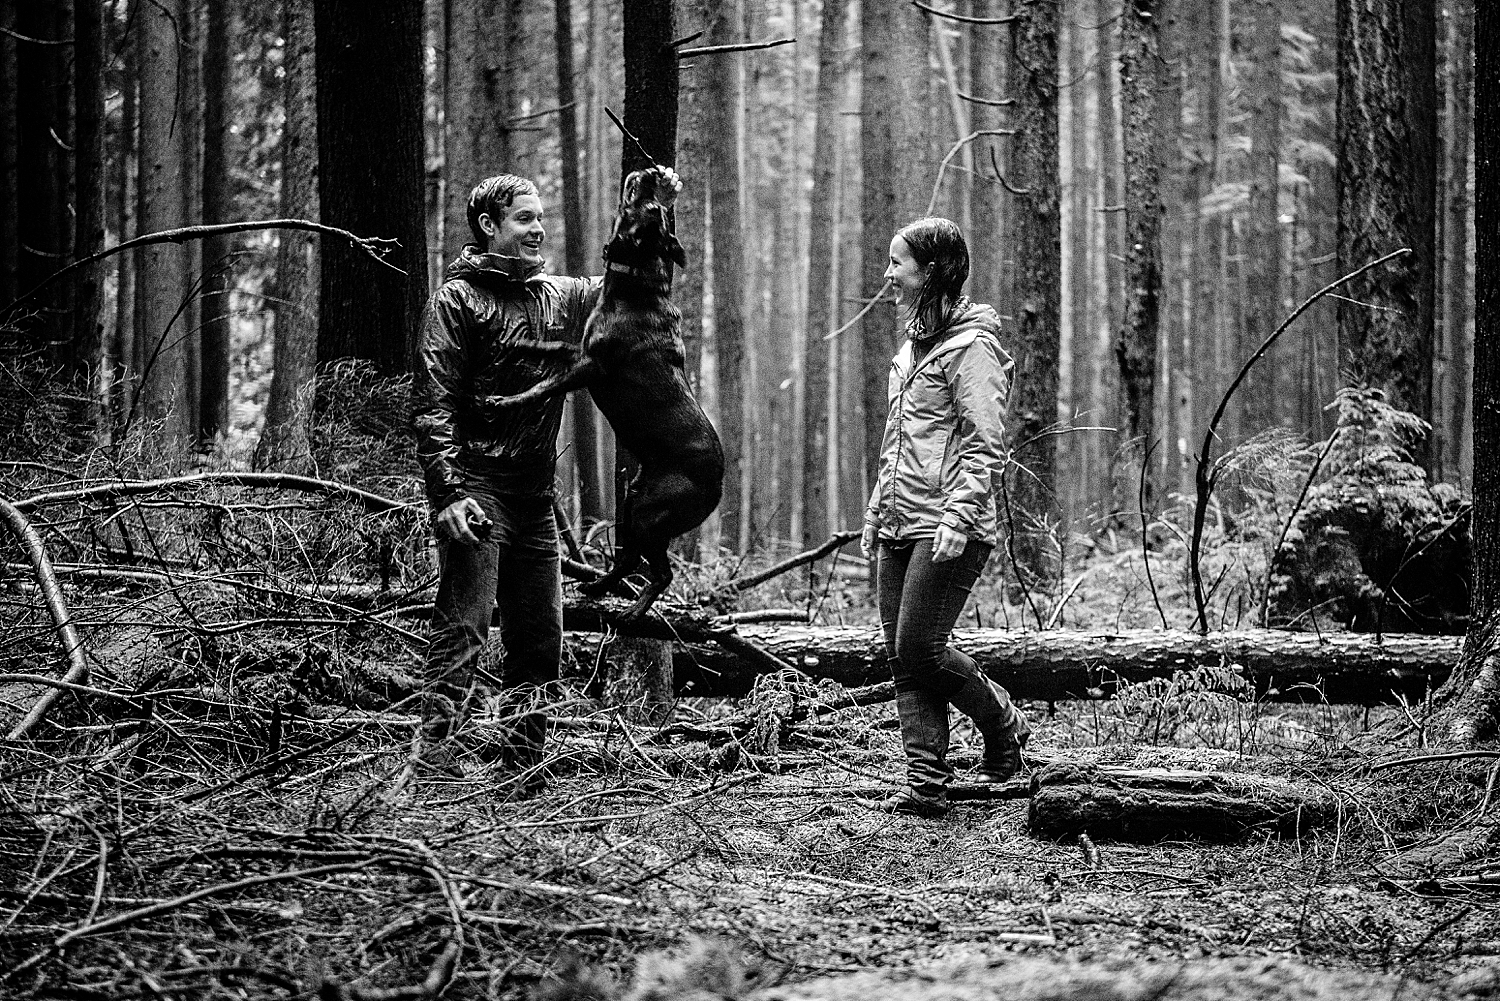 british columbia - pacific spirit park - engagement shoot - vancouver b.c.- maylies lang photography -14.jpg